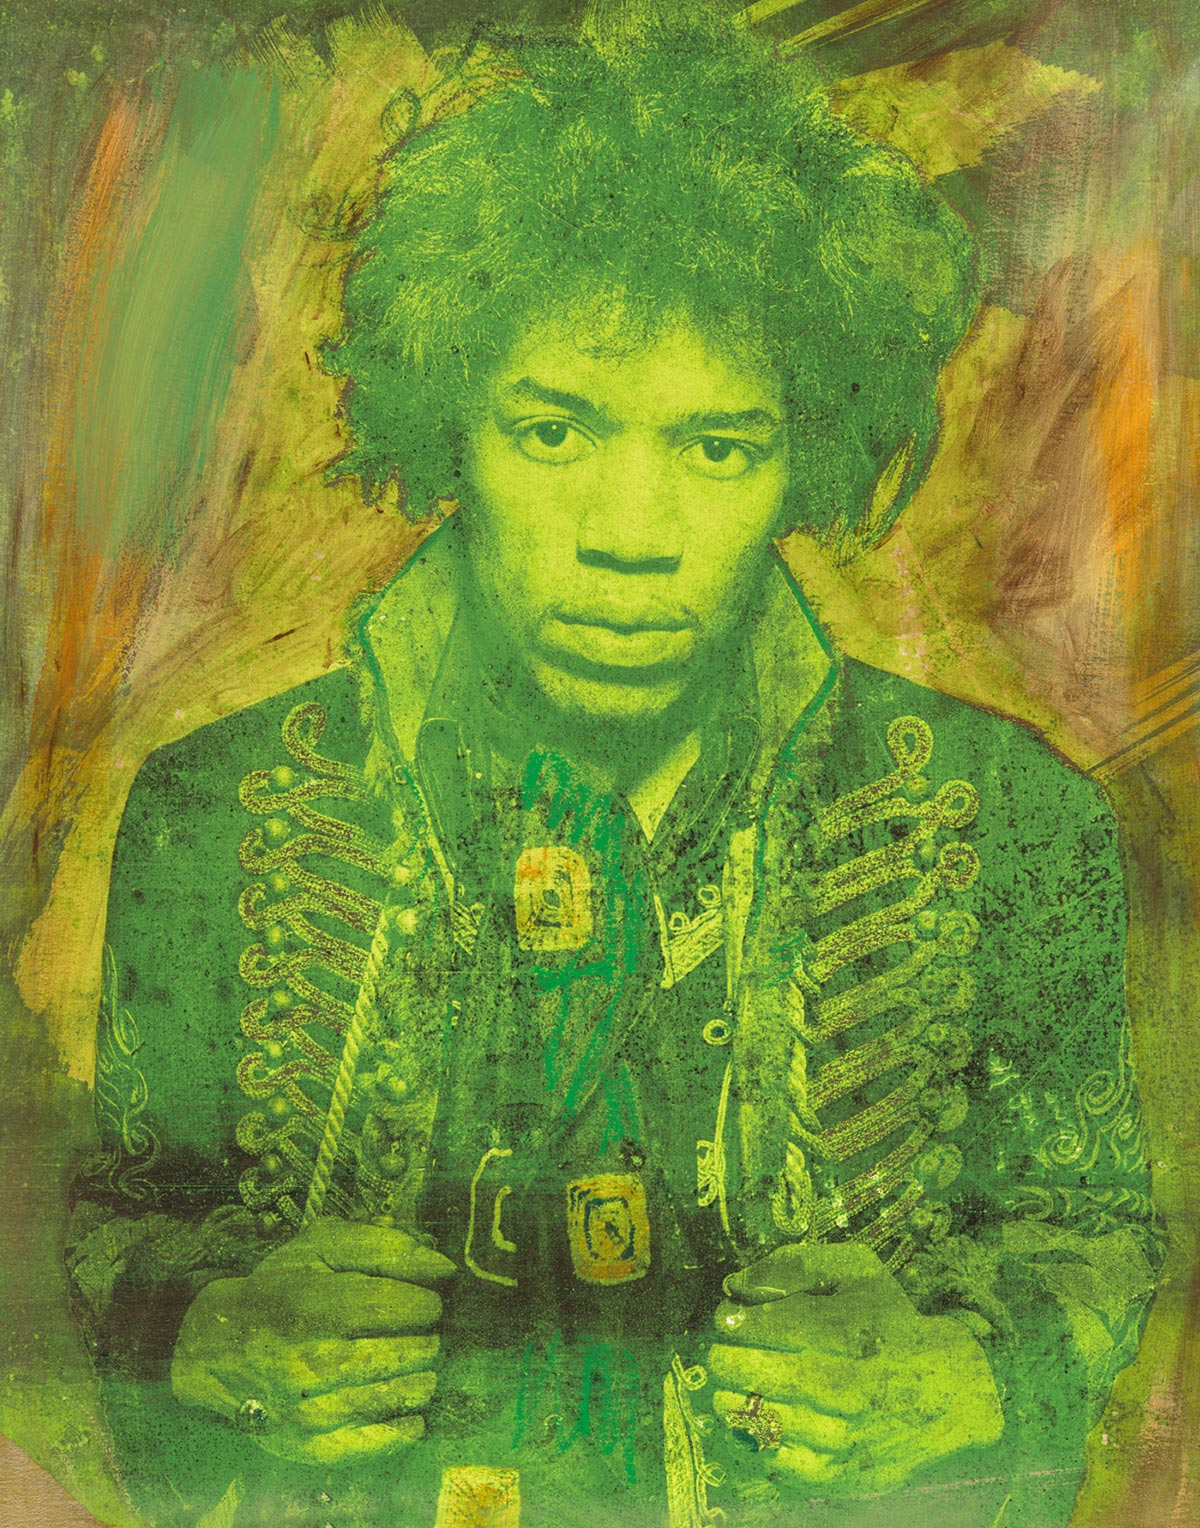 Mr Jimi Green Gold 2017 featuring Jimi Hendrix